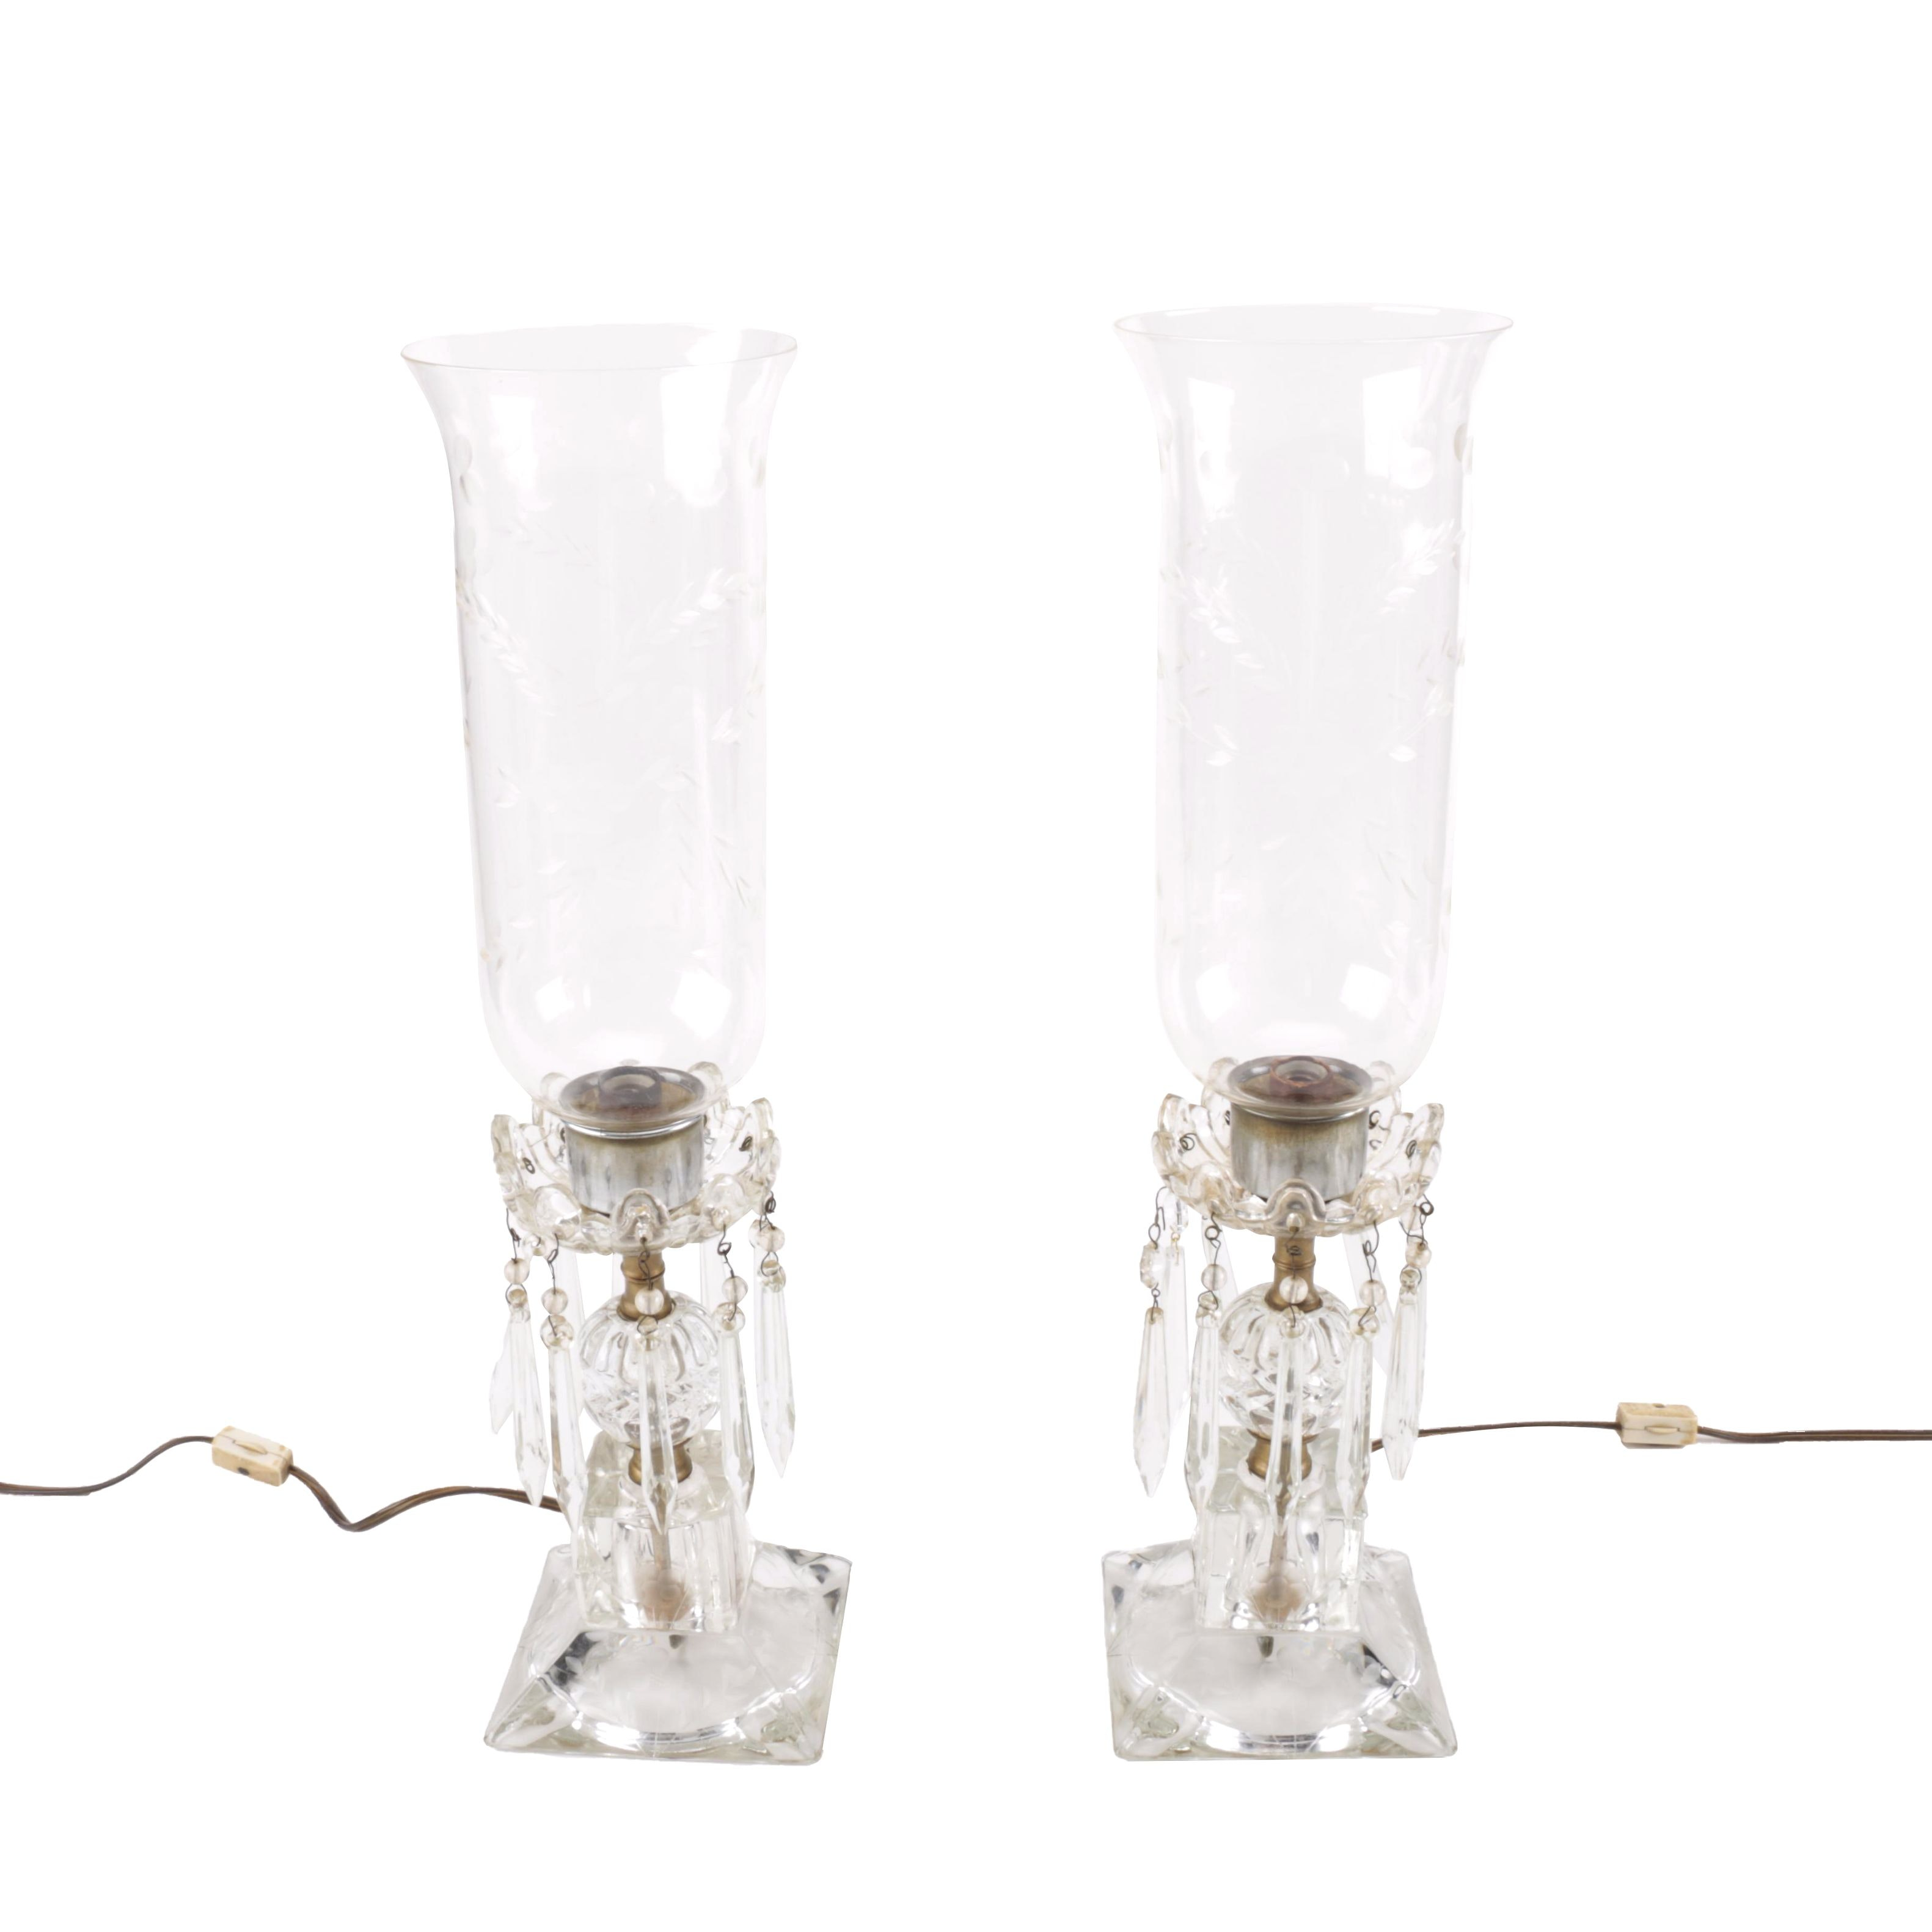 Boudoir CLear Glass and Brass Lamps